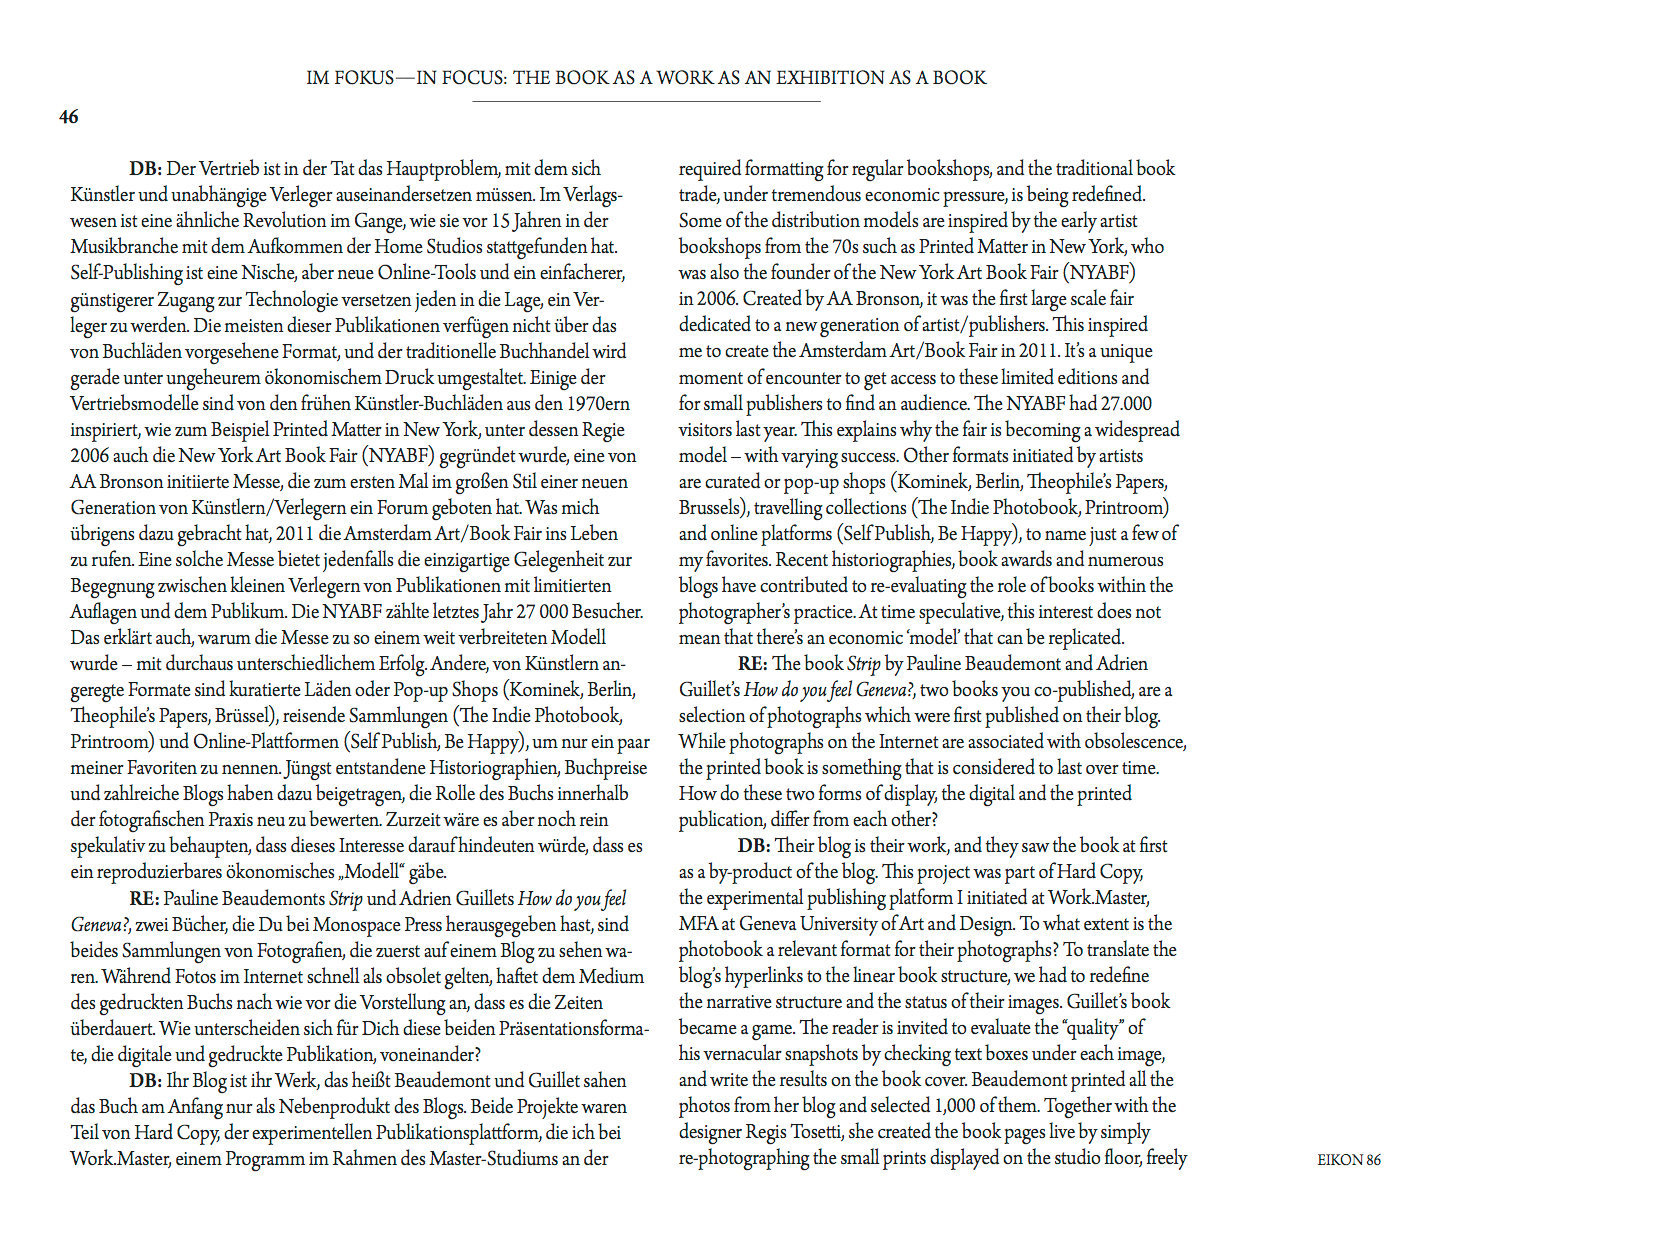 EIKON MAGAZINE, N. 86, MAY 2014